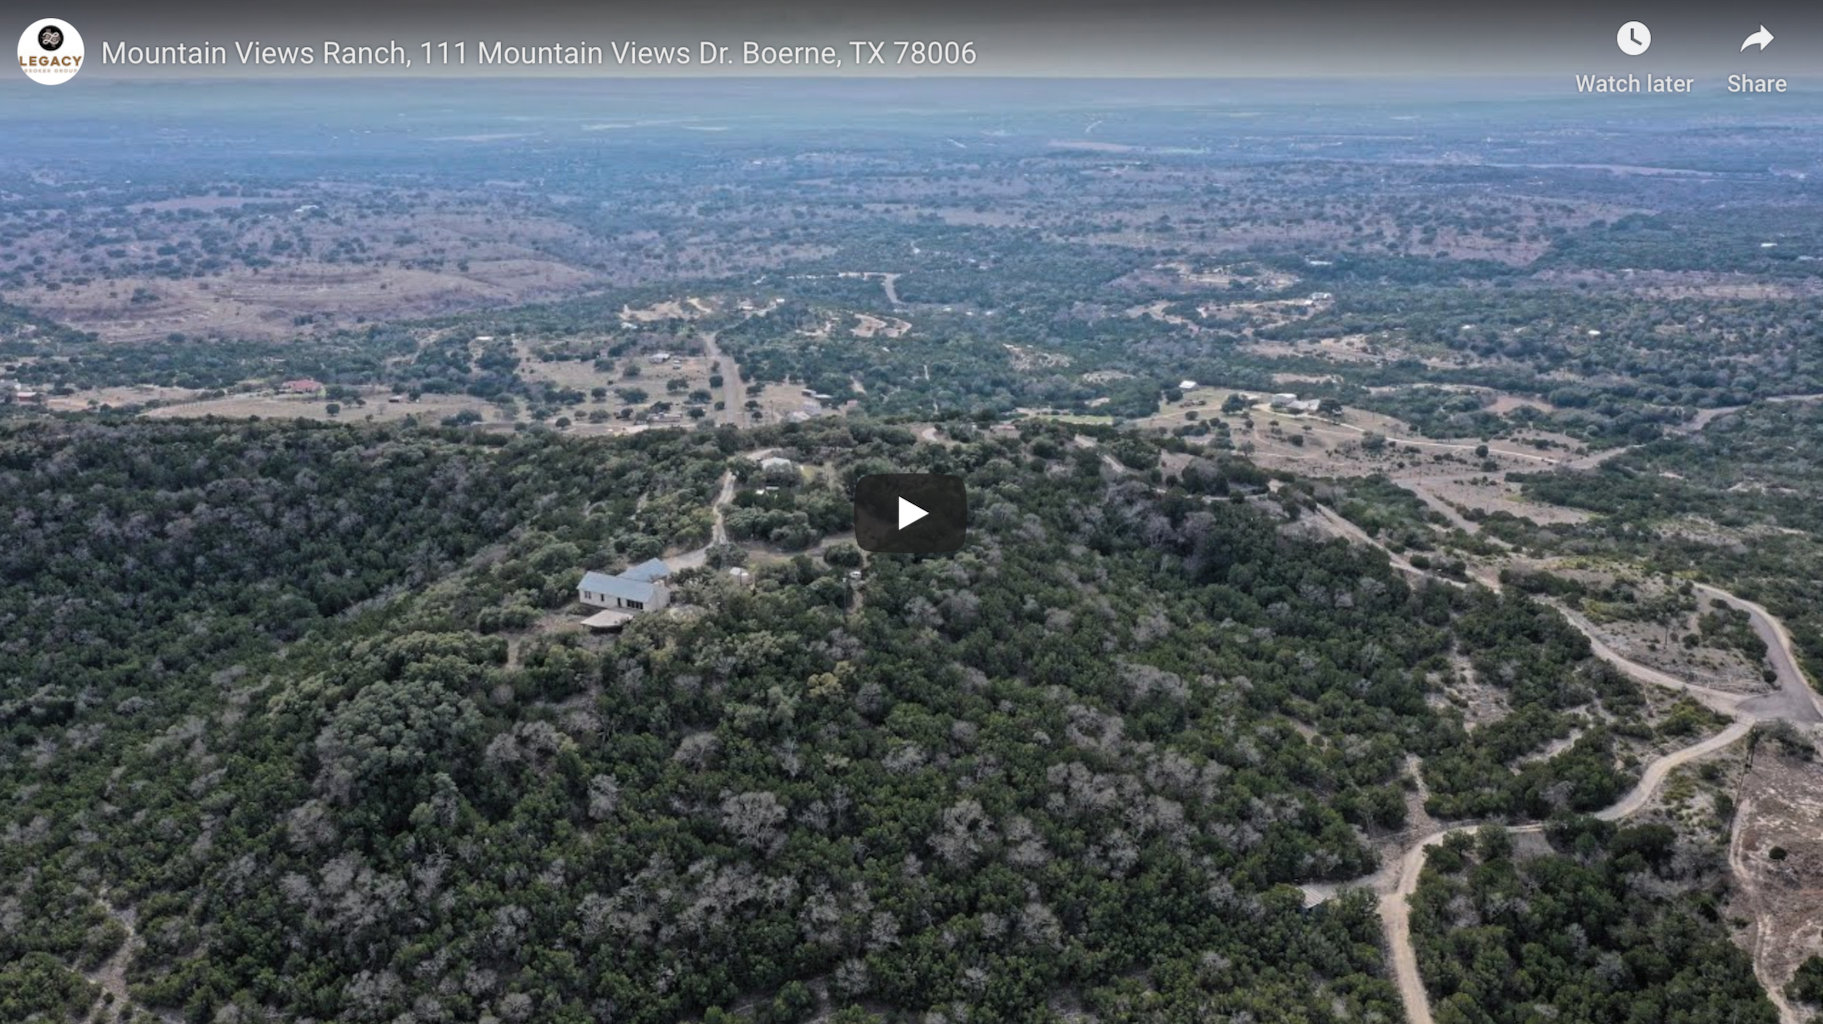 111 Mountain Views Dr. Boerne, TX 78006